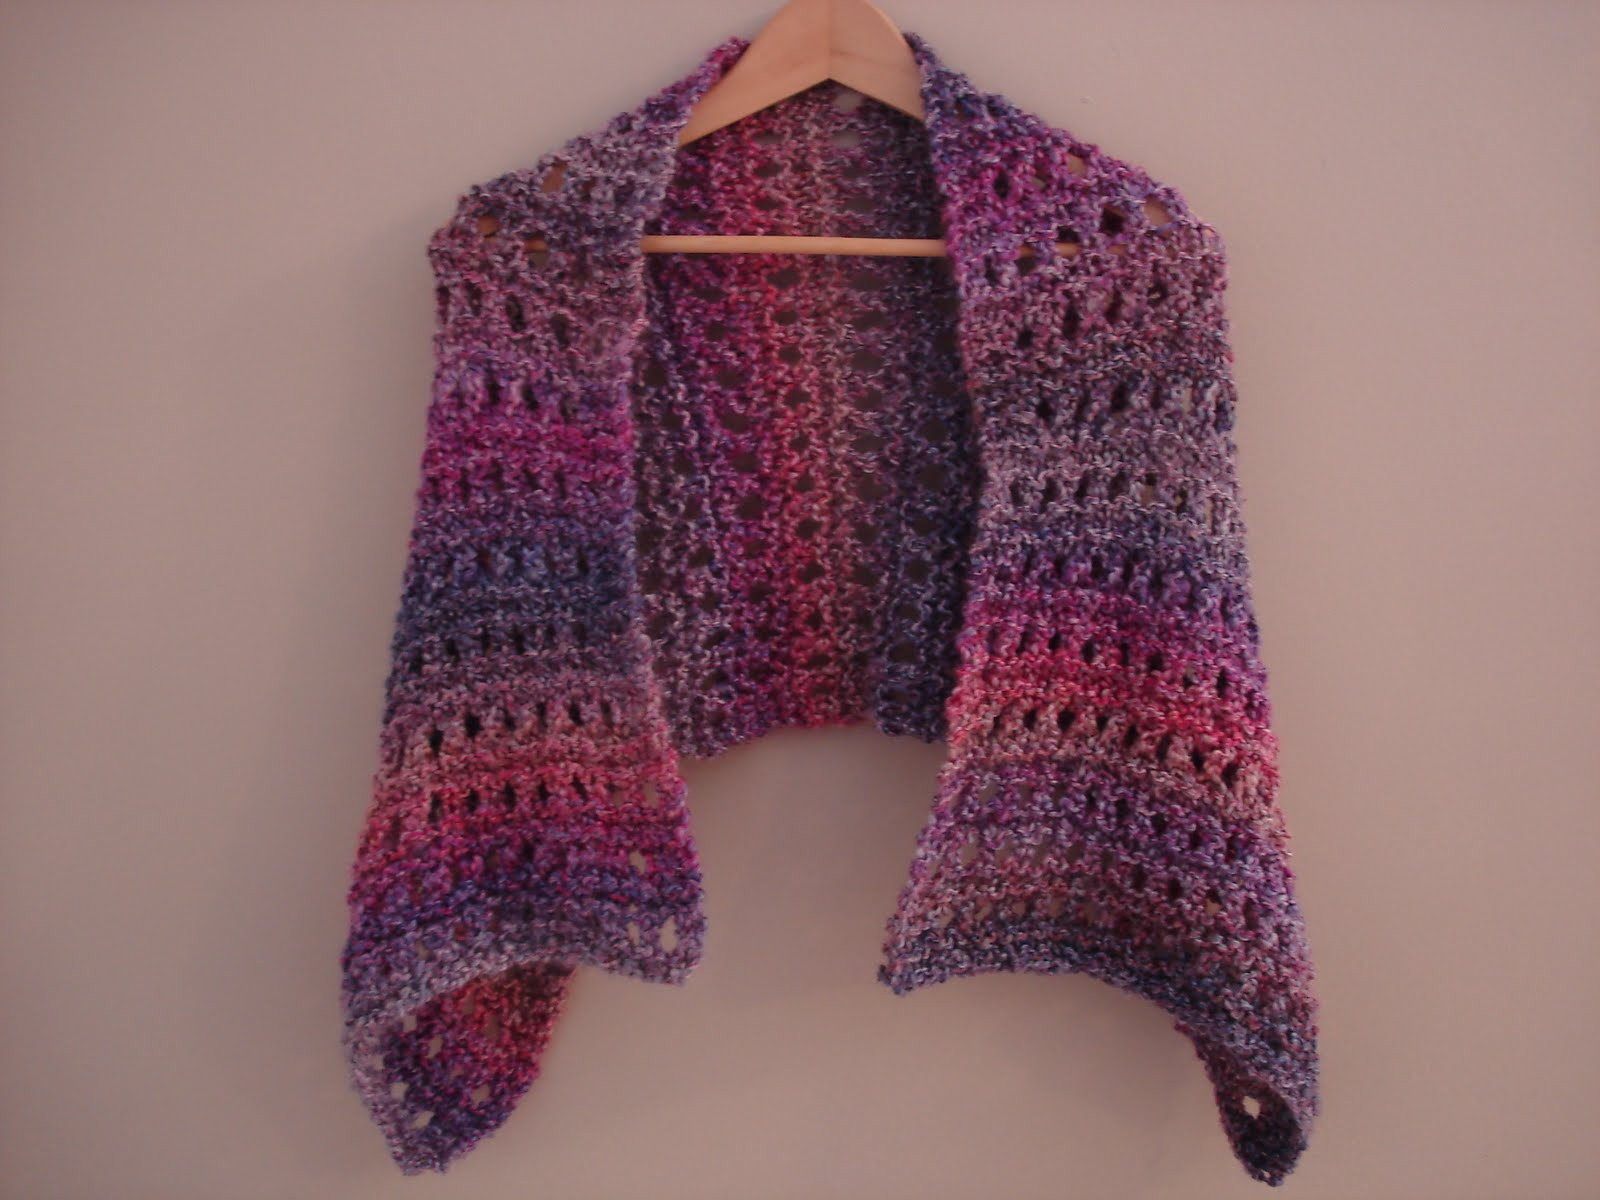 Free Knitted Shawl Pattern : Fiber Flux: Free Knitting Pattern...A Peaceful Shawl!